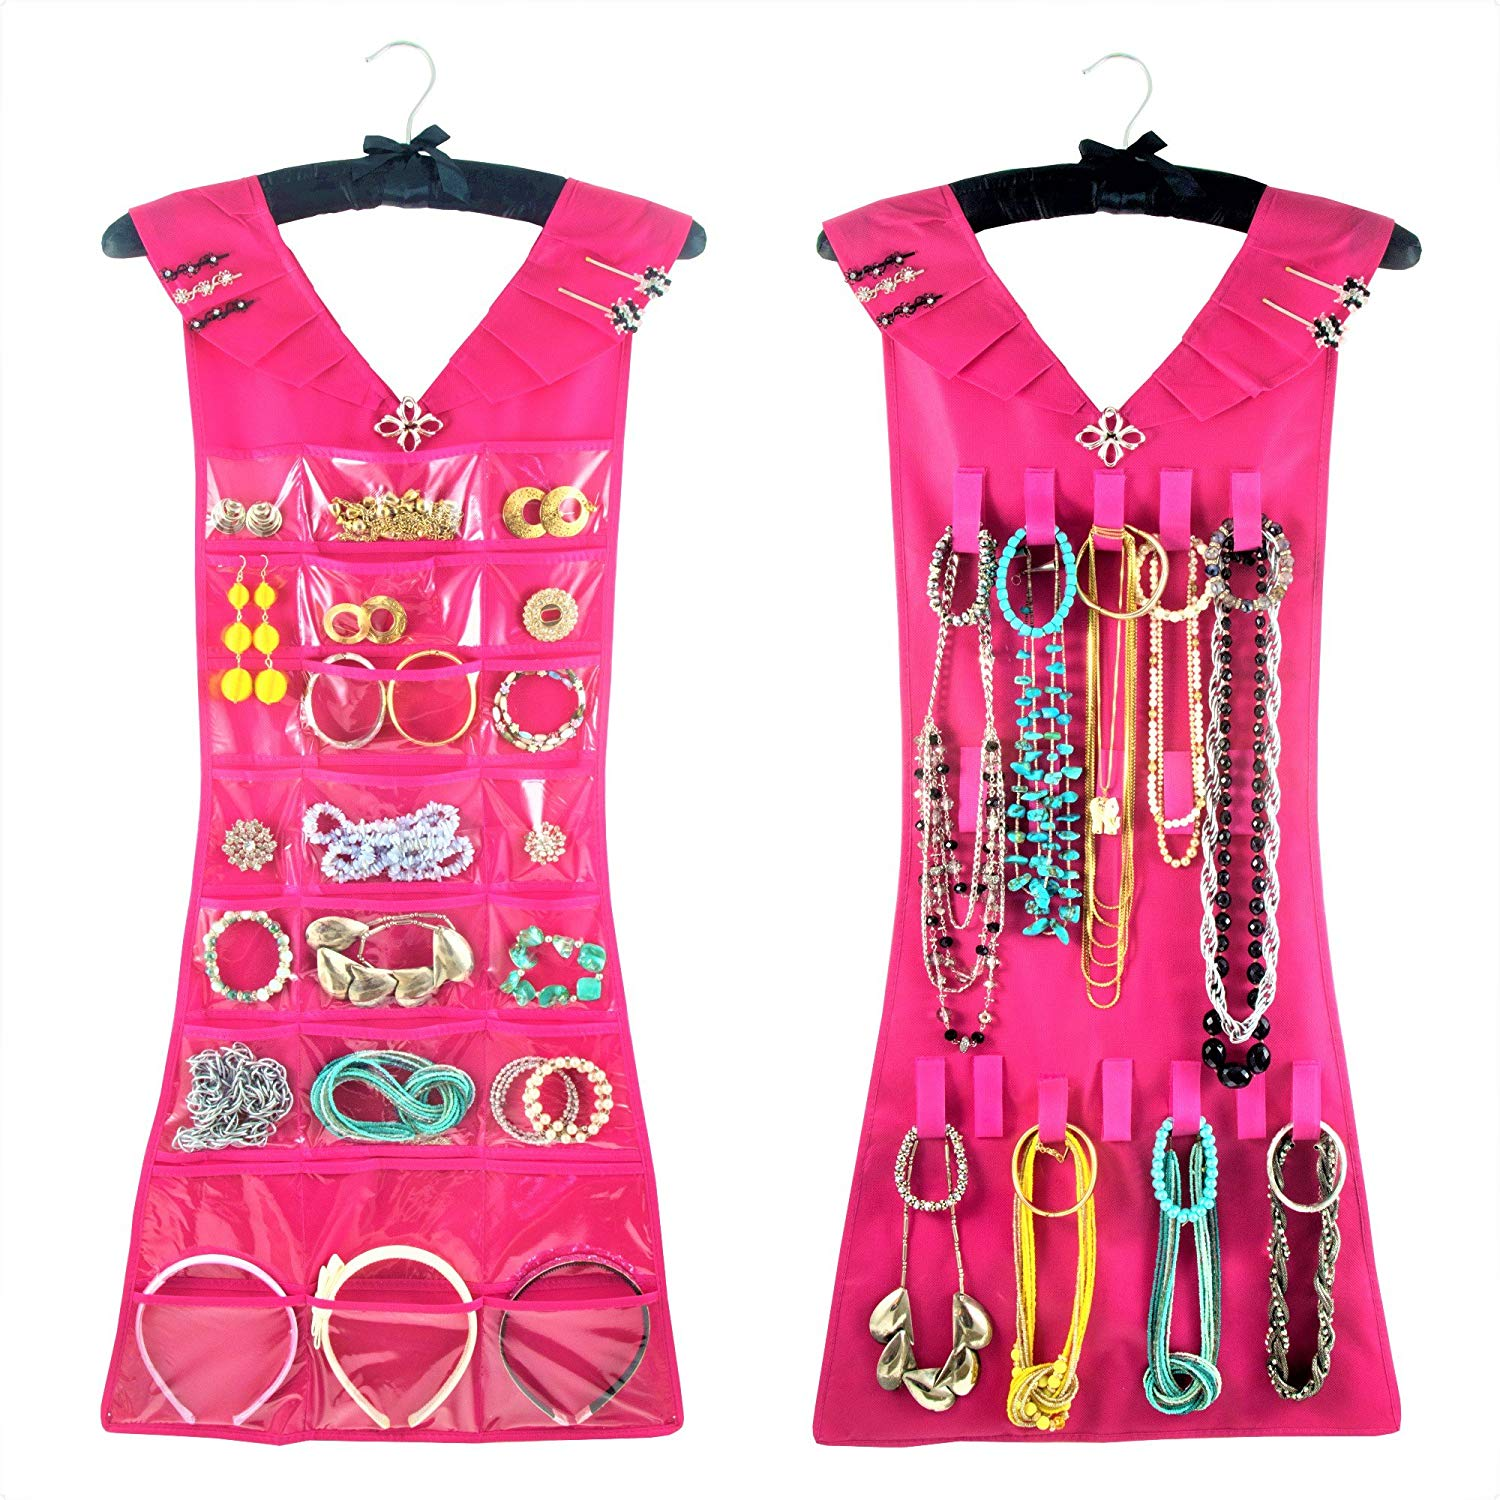 Hanging Jewelry Organizer, Closet Storage with Satin Hanger, 2 Sided for Jewelry, Hair Accessories & Makeup (1-Pink Dress & Black Satin Hanger, 24 Pockets 17 Hooks)